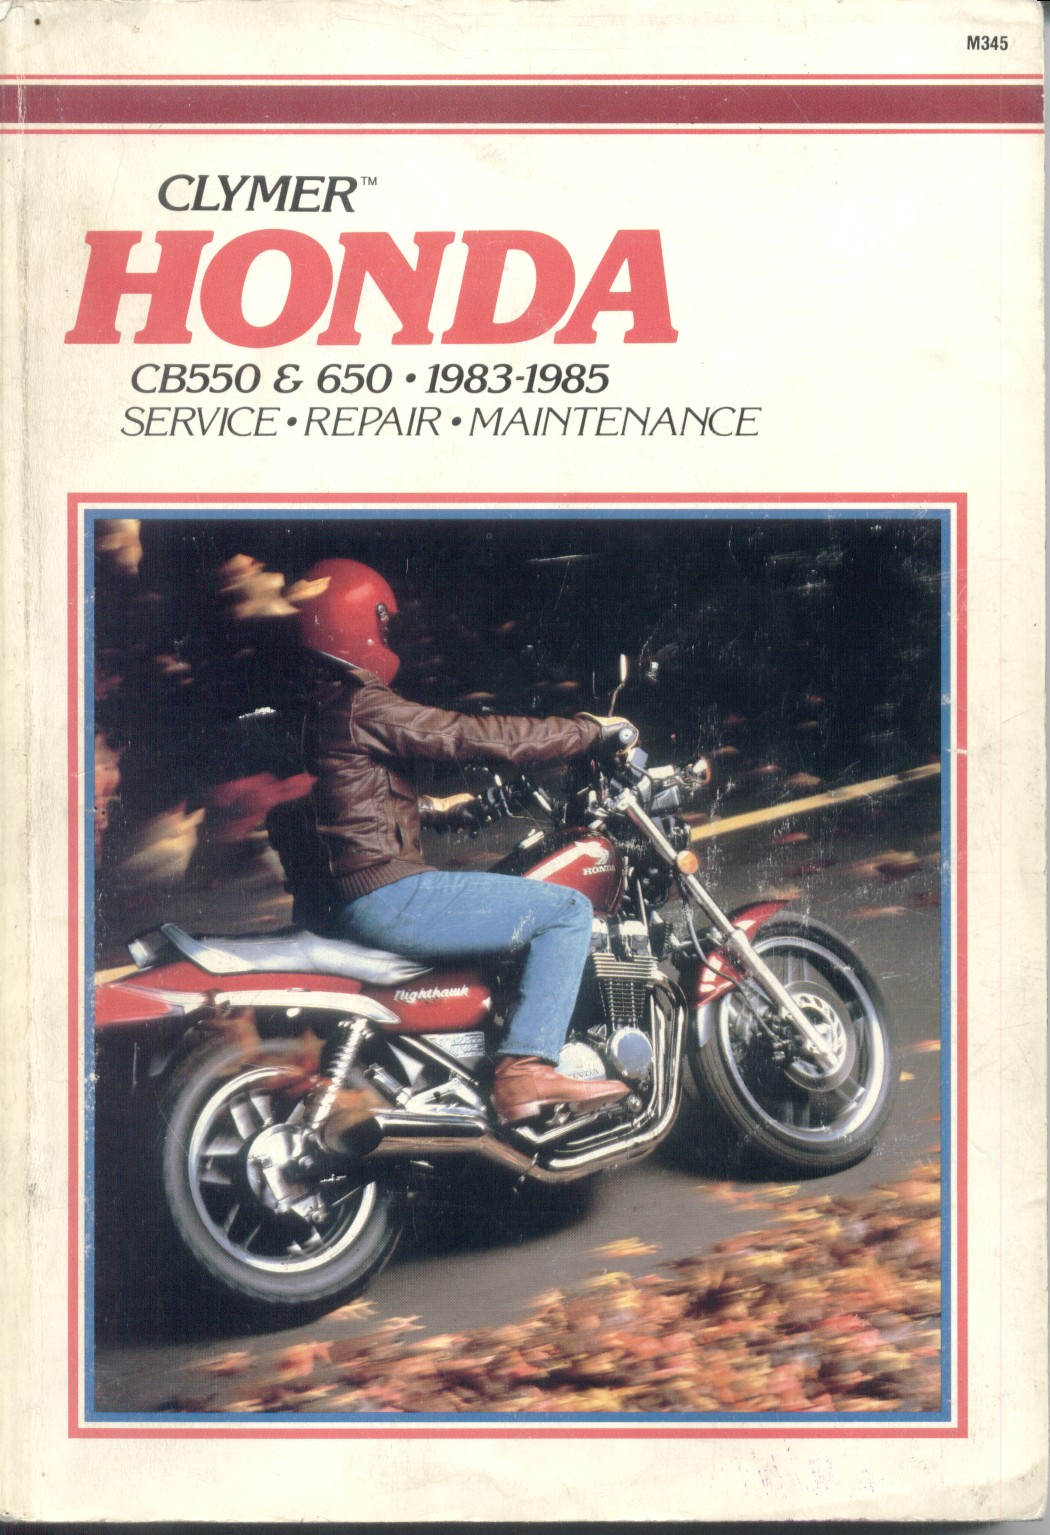 Workshop manual for Honda CB550 (1983-1985)